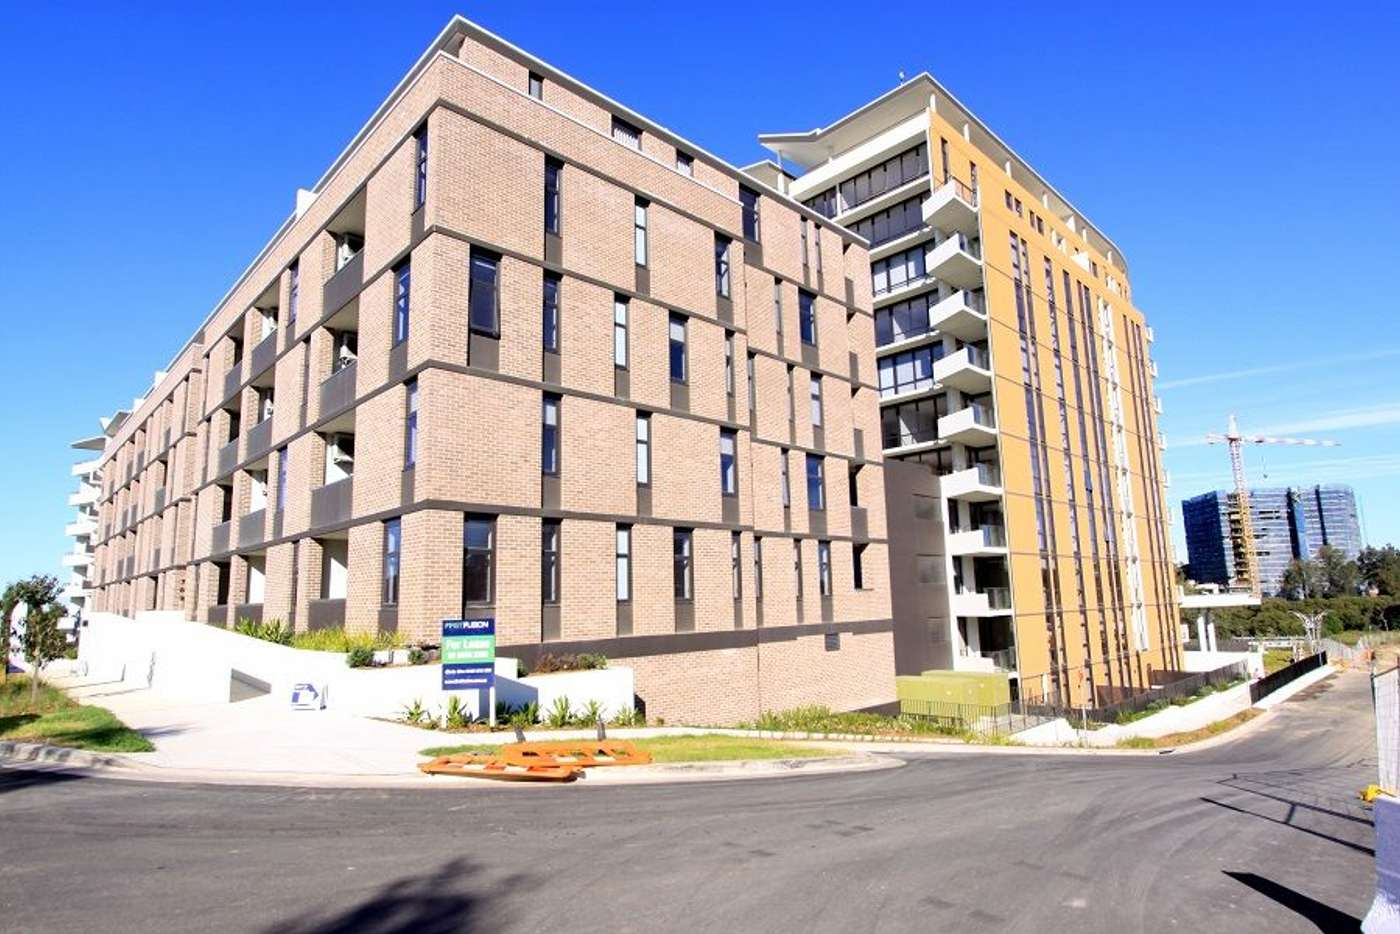 Main view of Homely apartment listing, 207c/3 Broughton Street, Parramatta NSW 2150